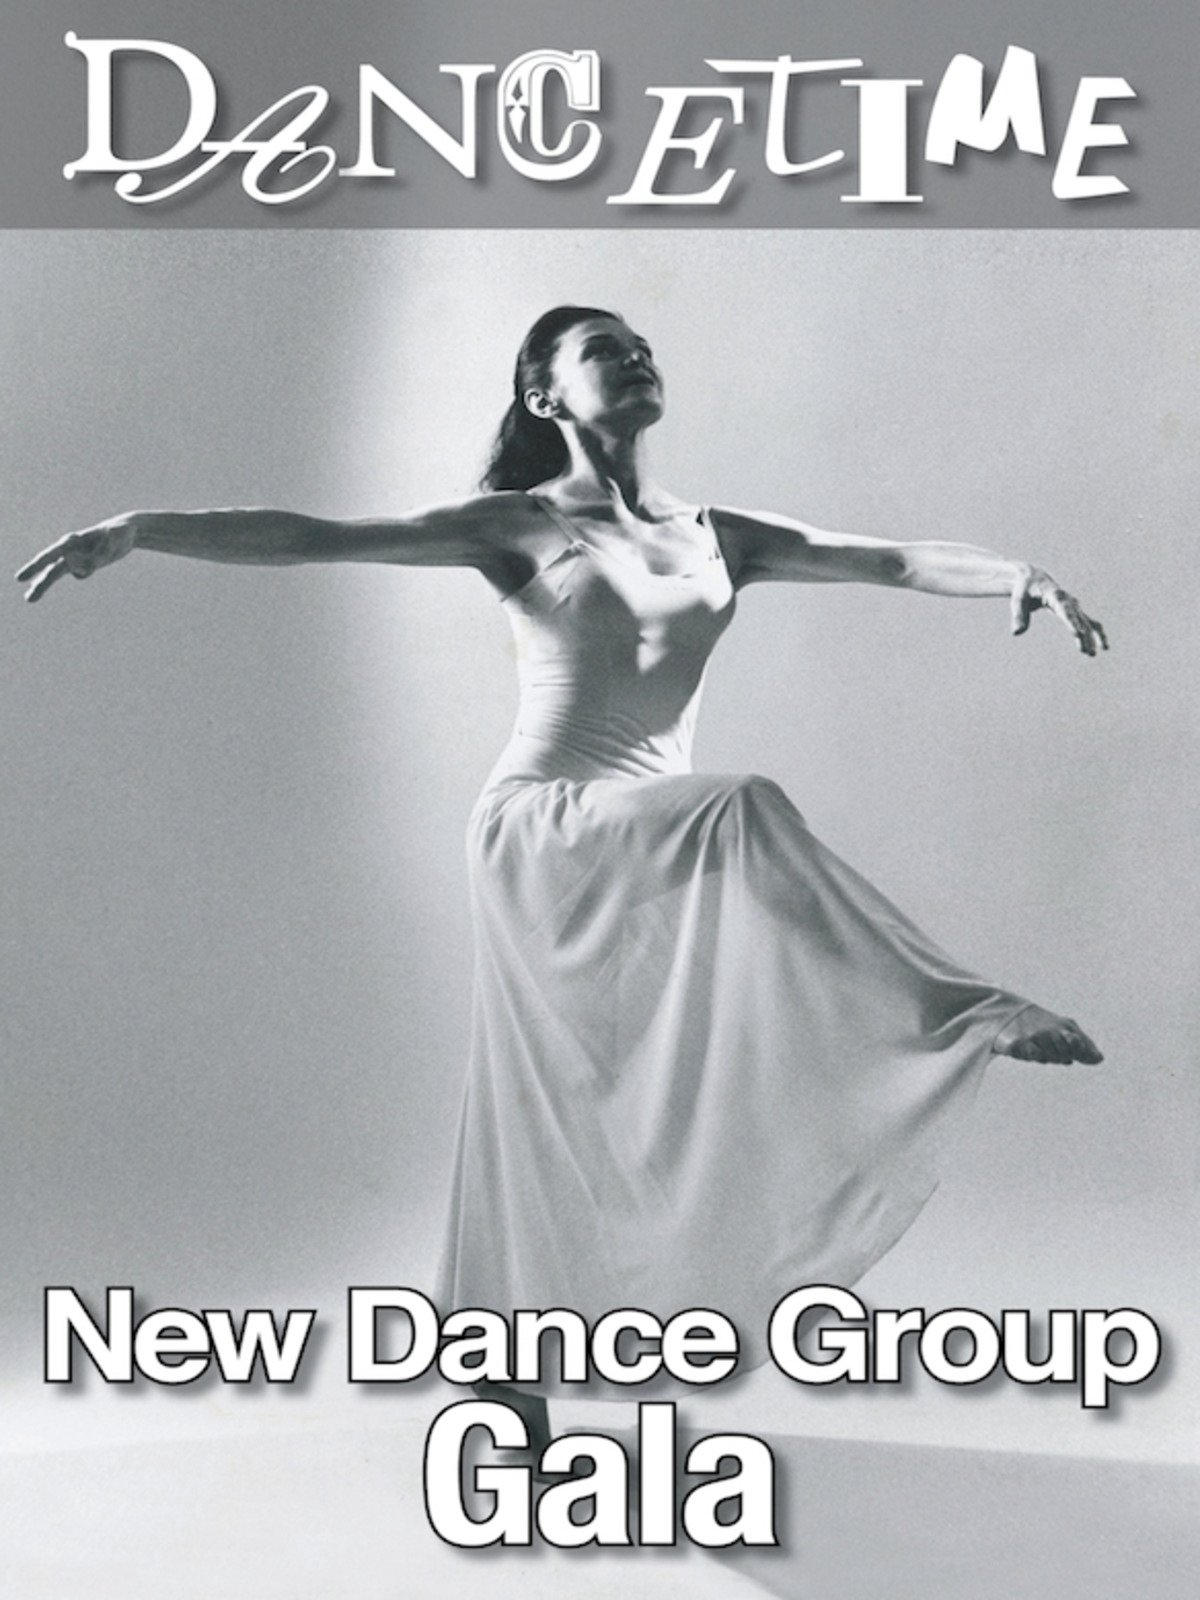 Dancetime: New Dance Group Gala